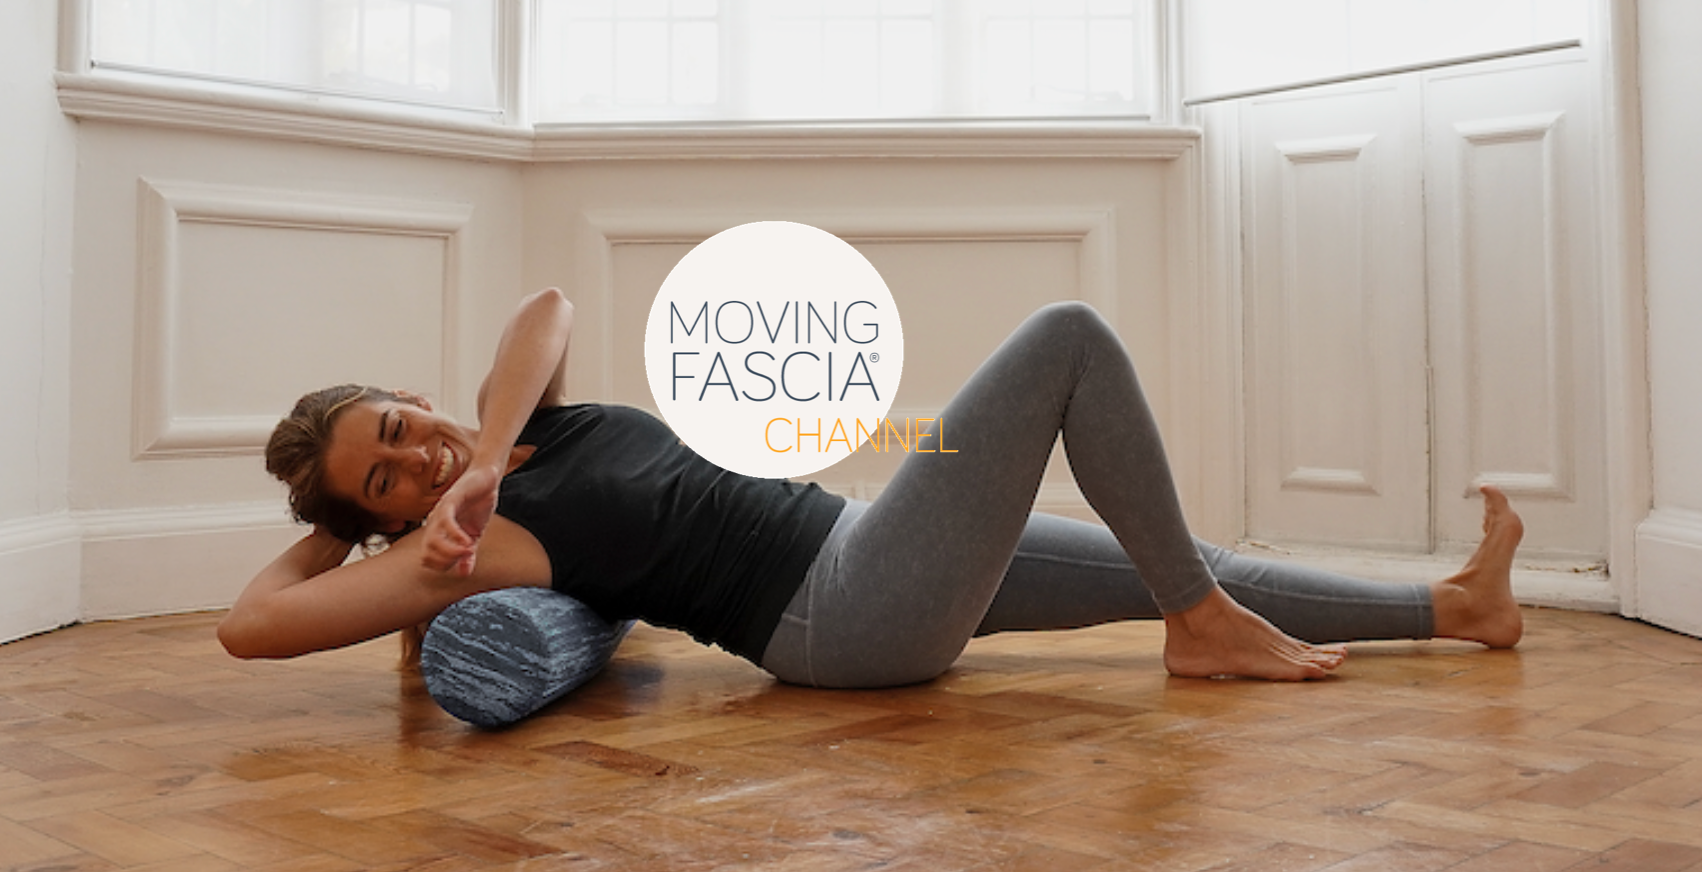 Moving Fascia Channel with Ana Barretxeguren